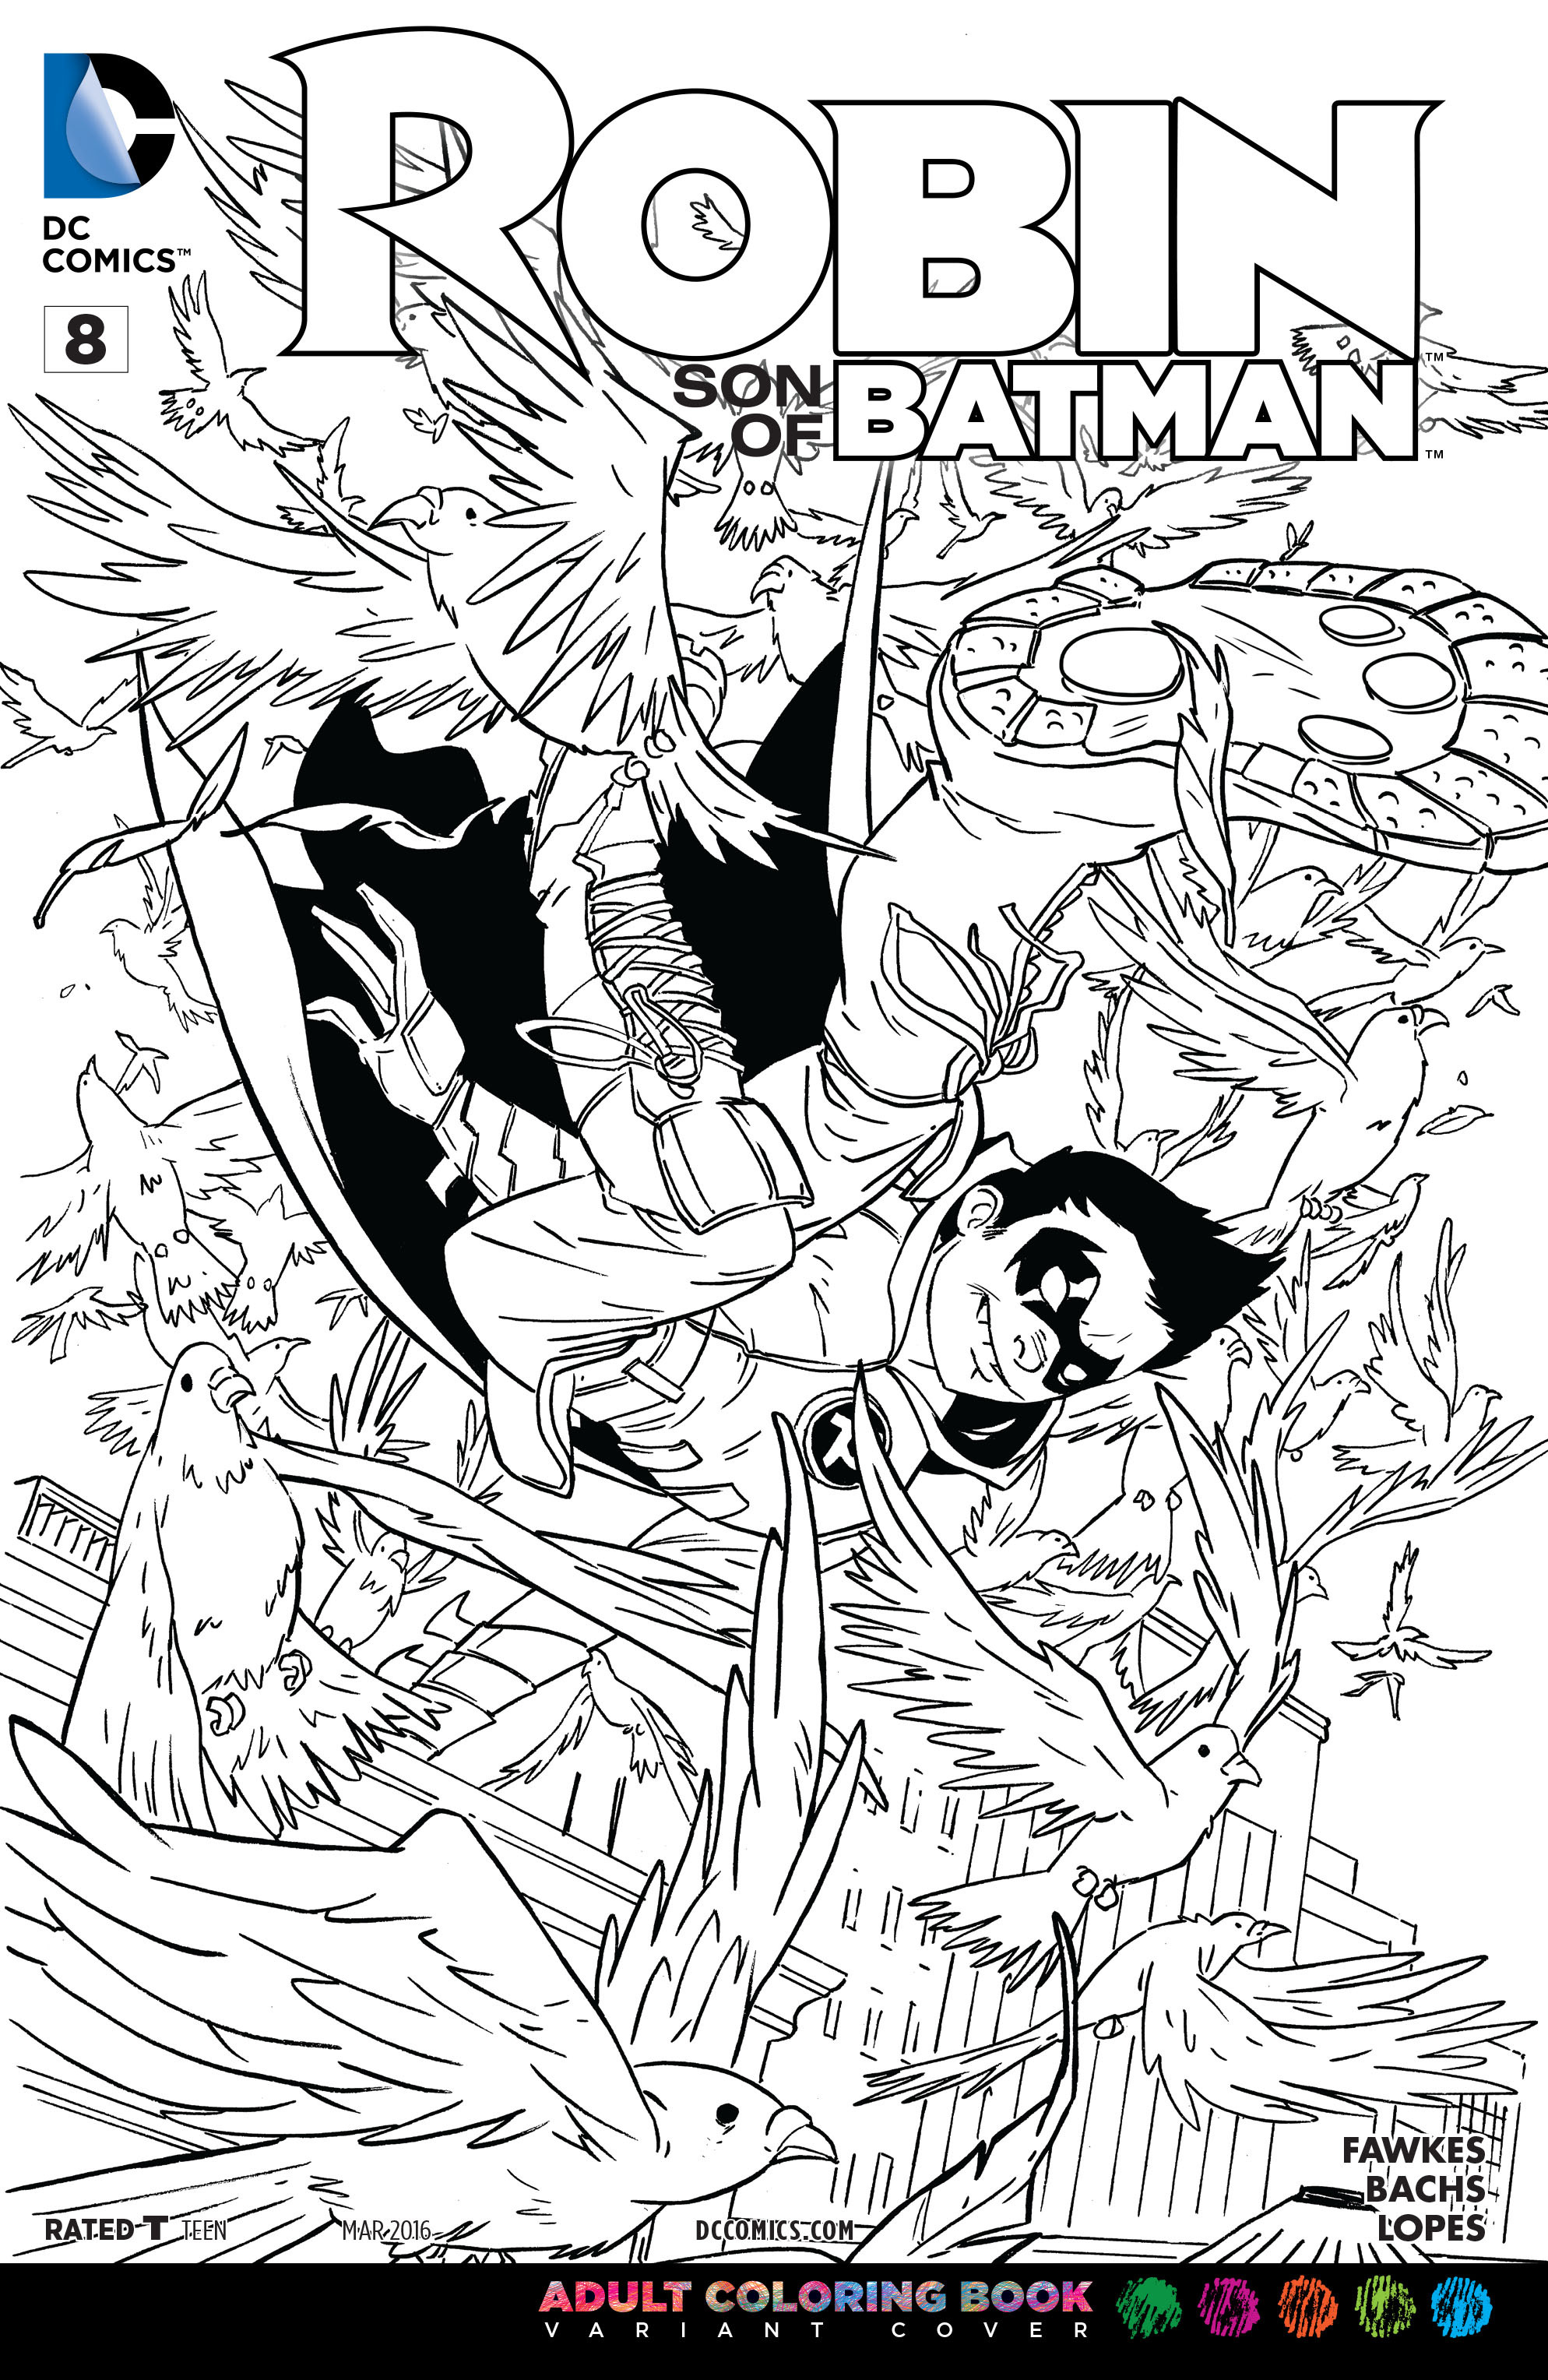 image robin son of batman vol 1 8 coloring book variant